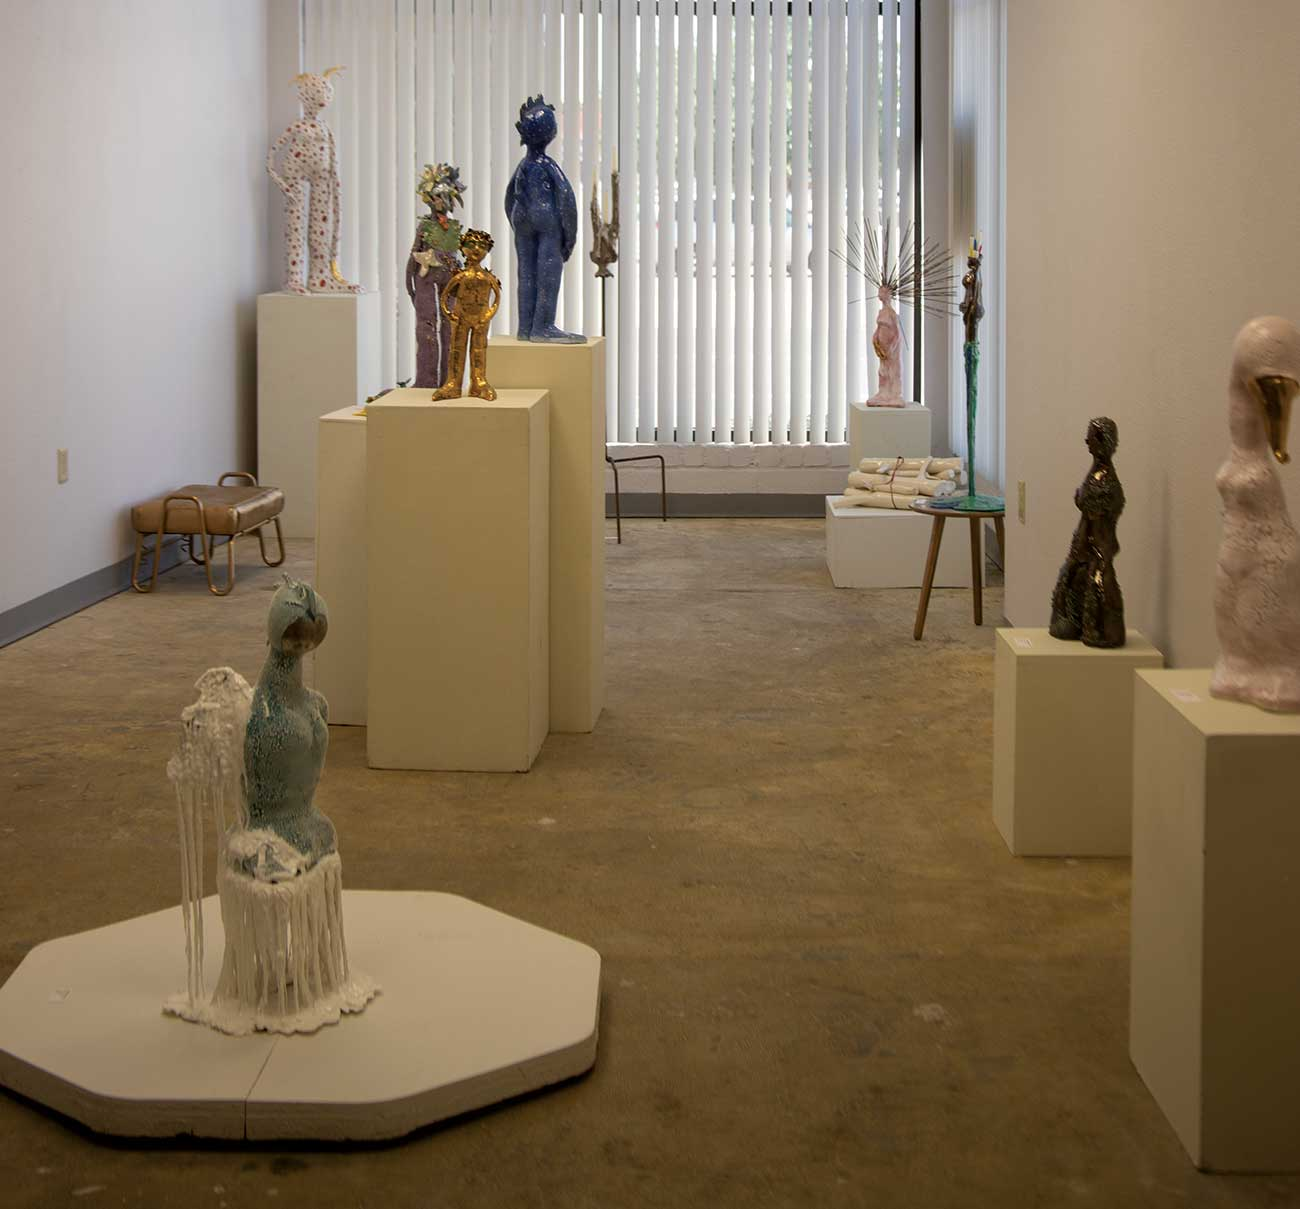 Art gallery filled with sculptures